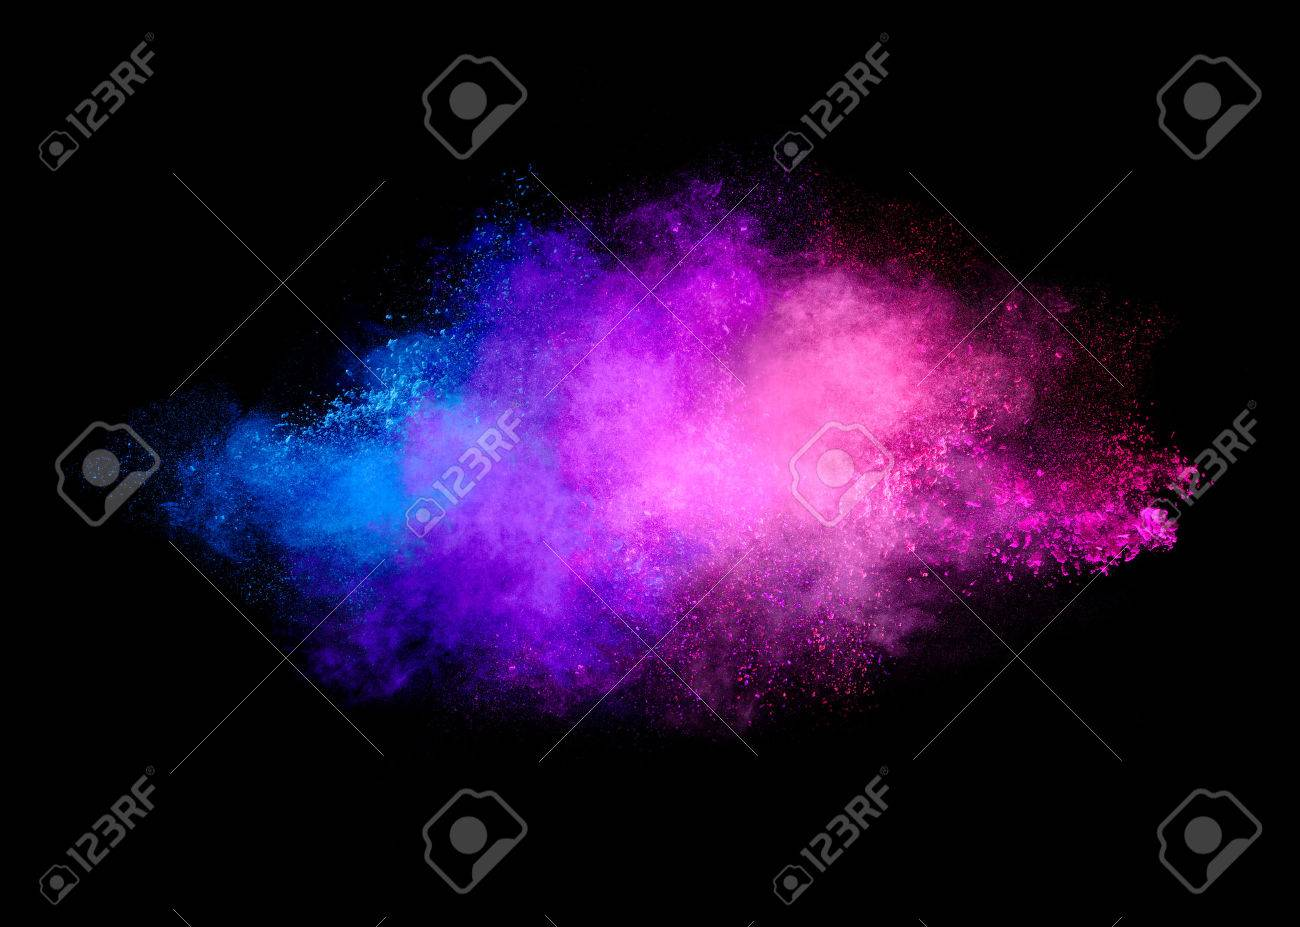 Colorful dust particle explosion resembling a pyrotechnic effect. Closeup of a color explosion isolated on black - 55314672